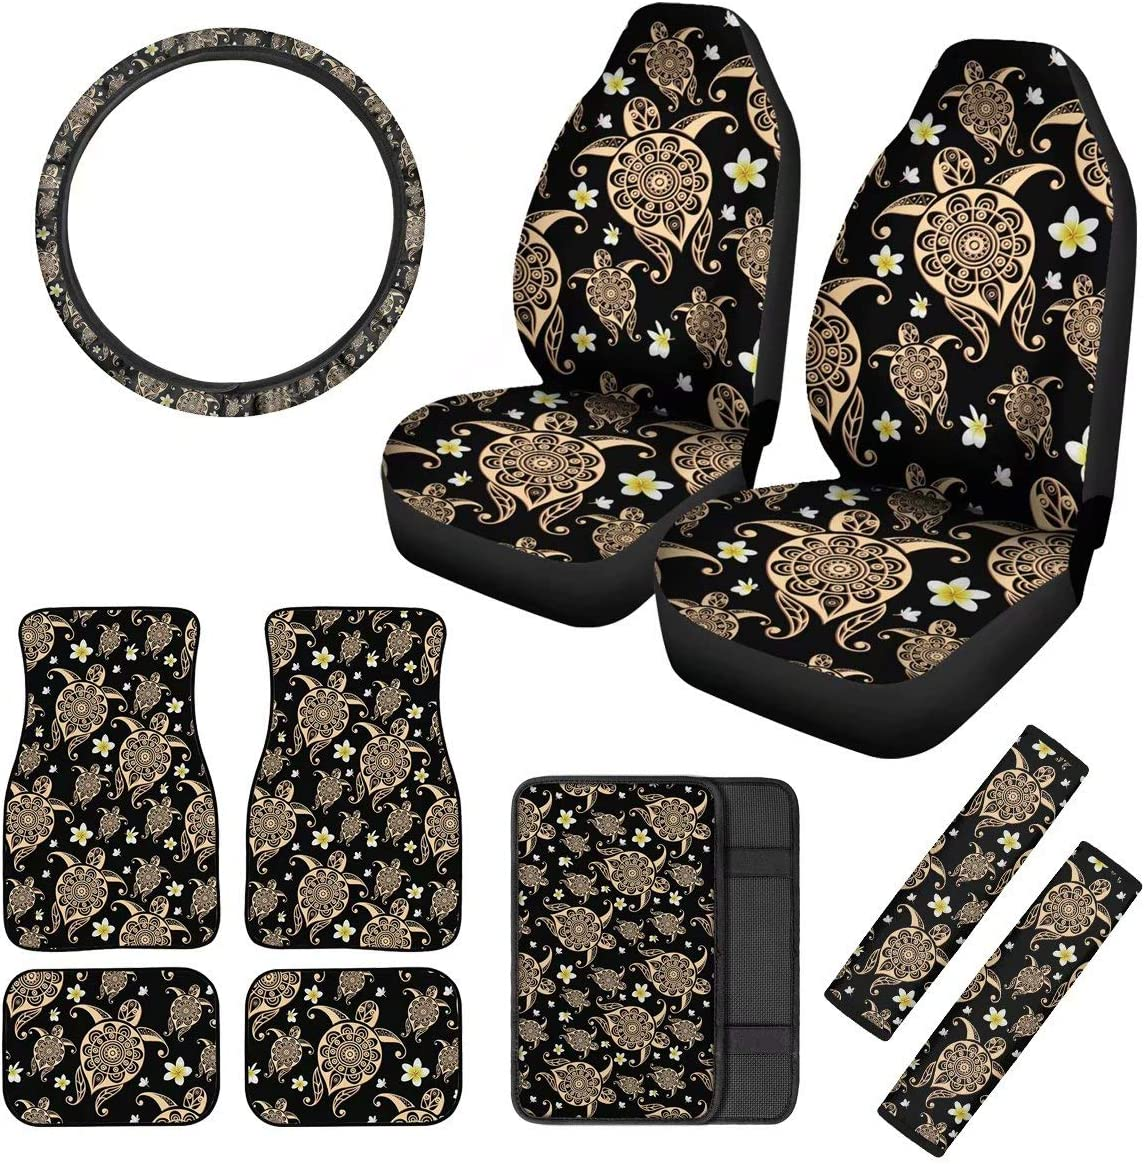 Tupalatus Blue Butterfly Pattern Car Seat Covers for Women Ladies,Car Accessoires 10Packs Set with Floor Mats,Auto Armrest Seat Box Cover,Steering Wheel Cover,Safety Seat Belt Pads Novelty Gifts